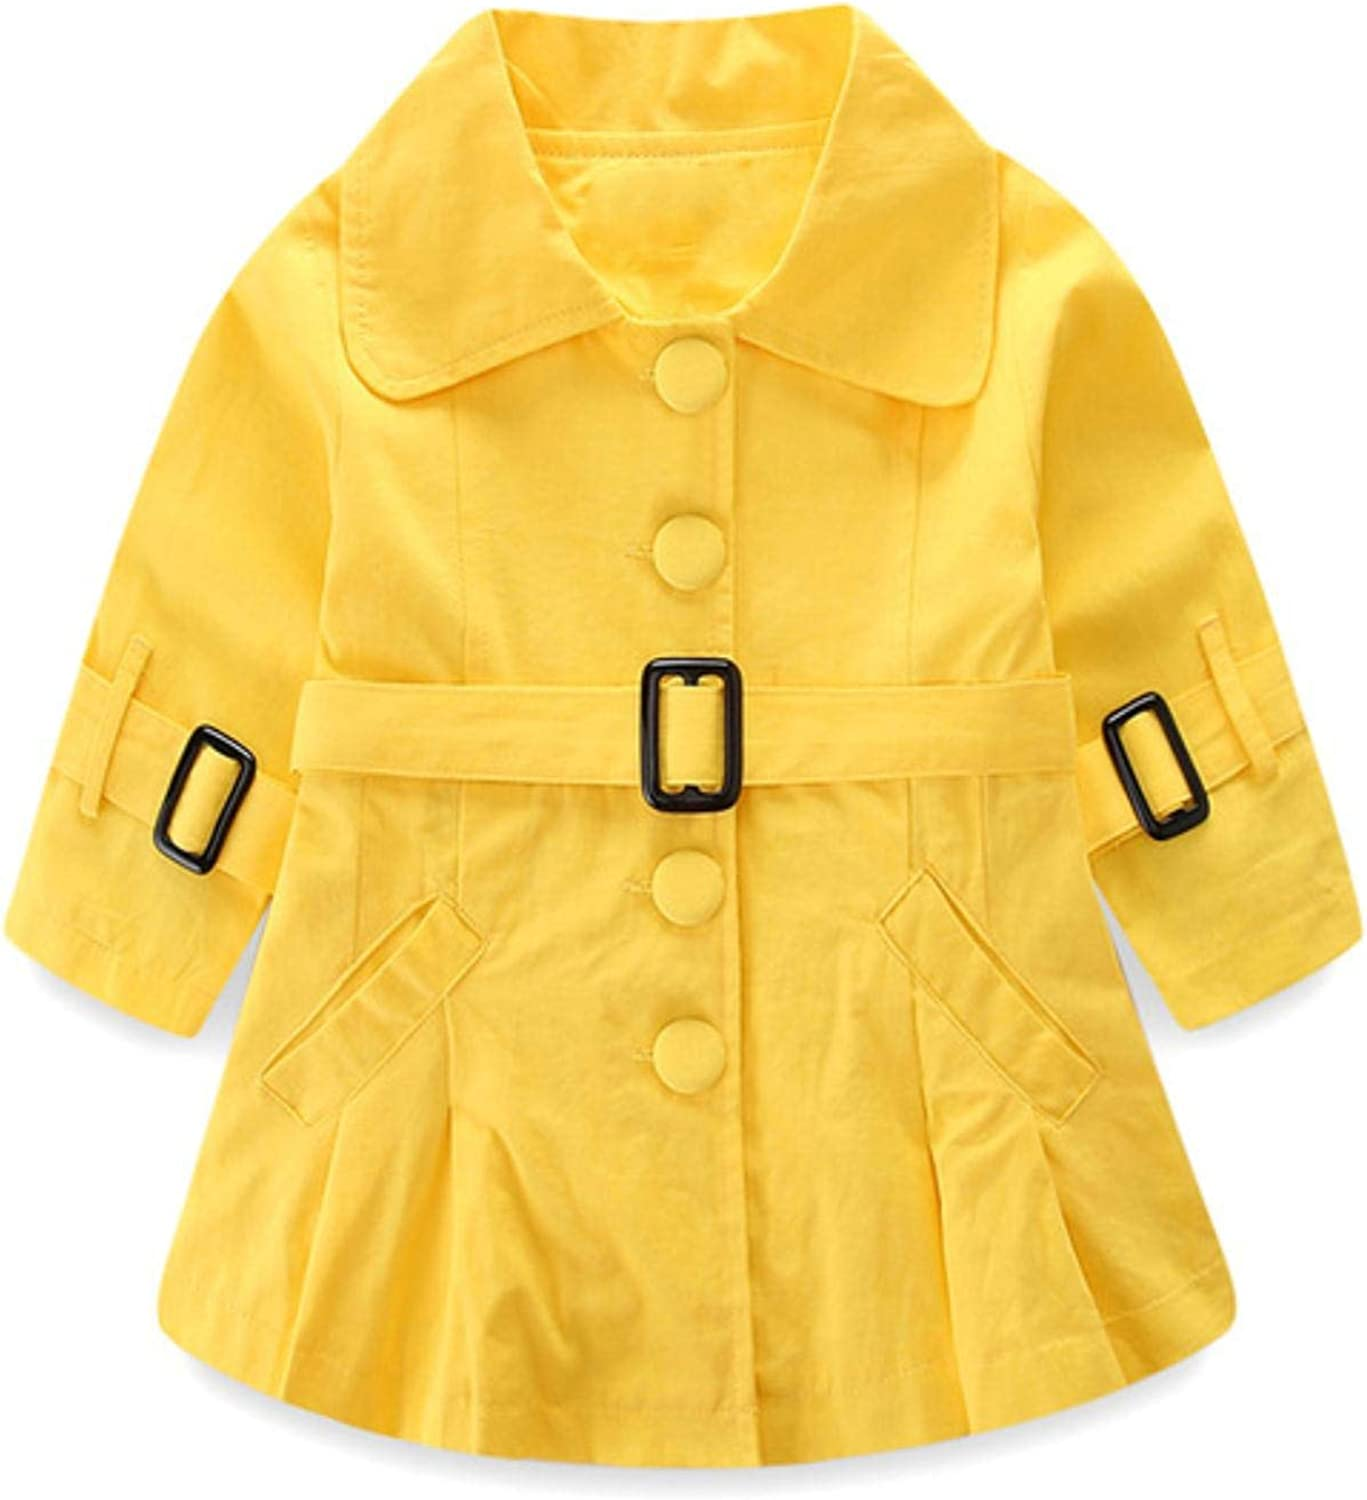 Girls Trench Coats Solid Long Sleeve Windbreaker Outerwear FashionButton Girl Autumn Clothes